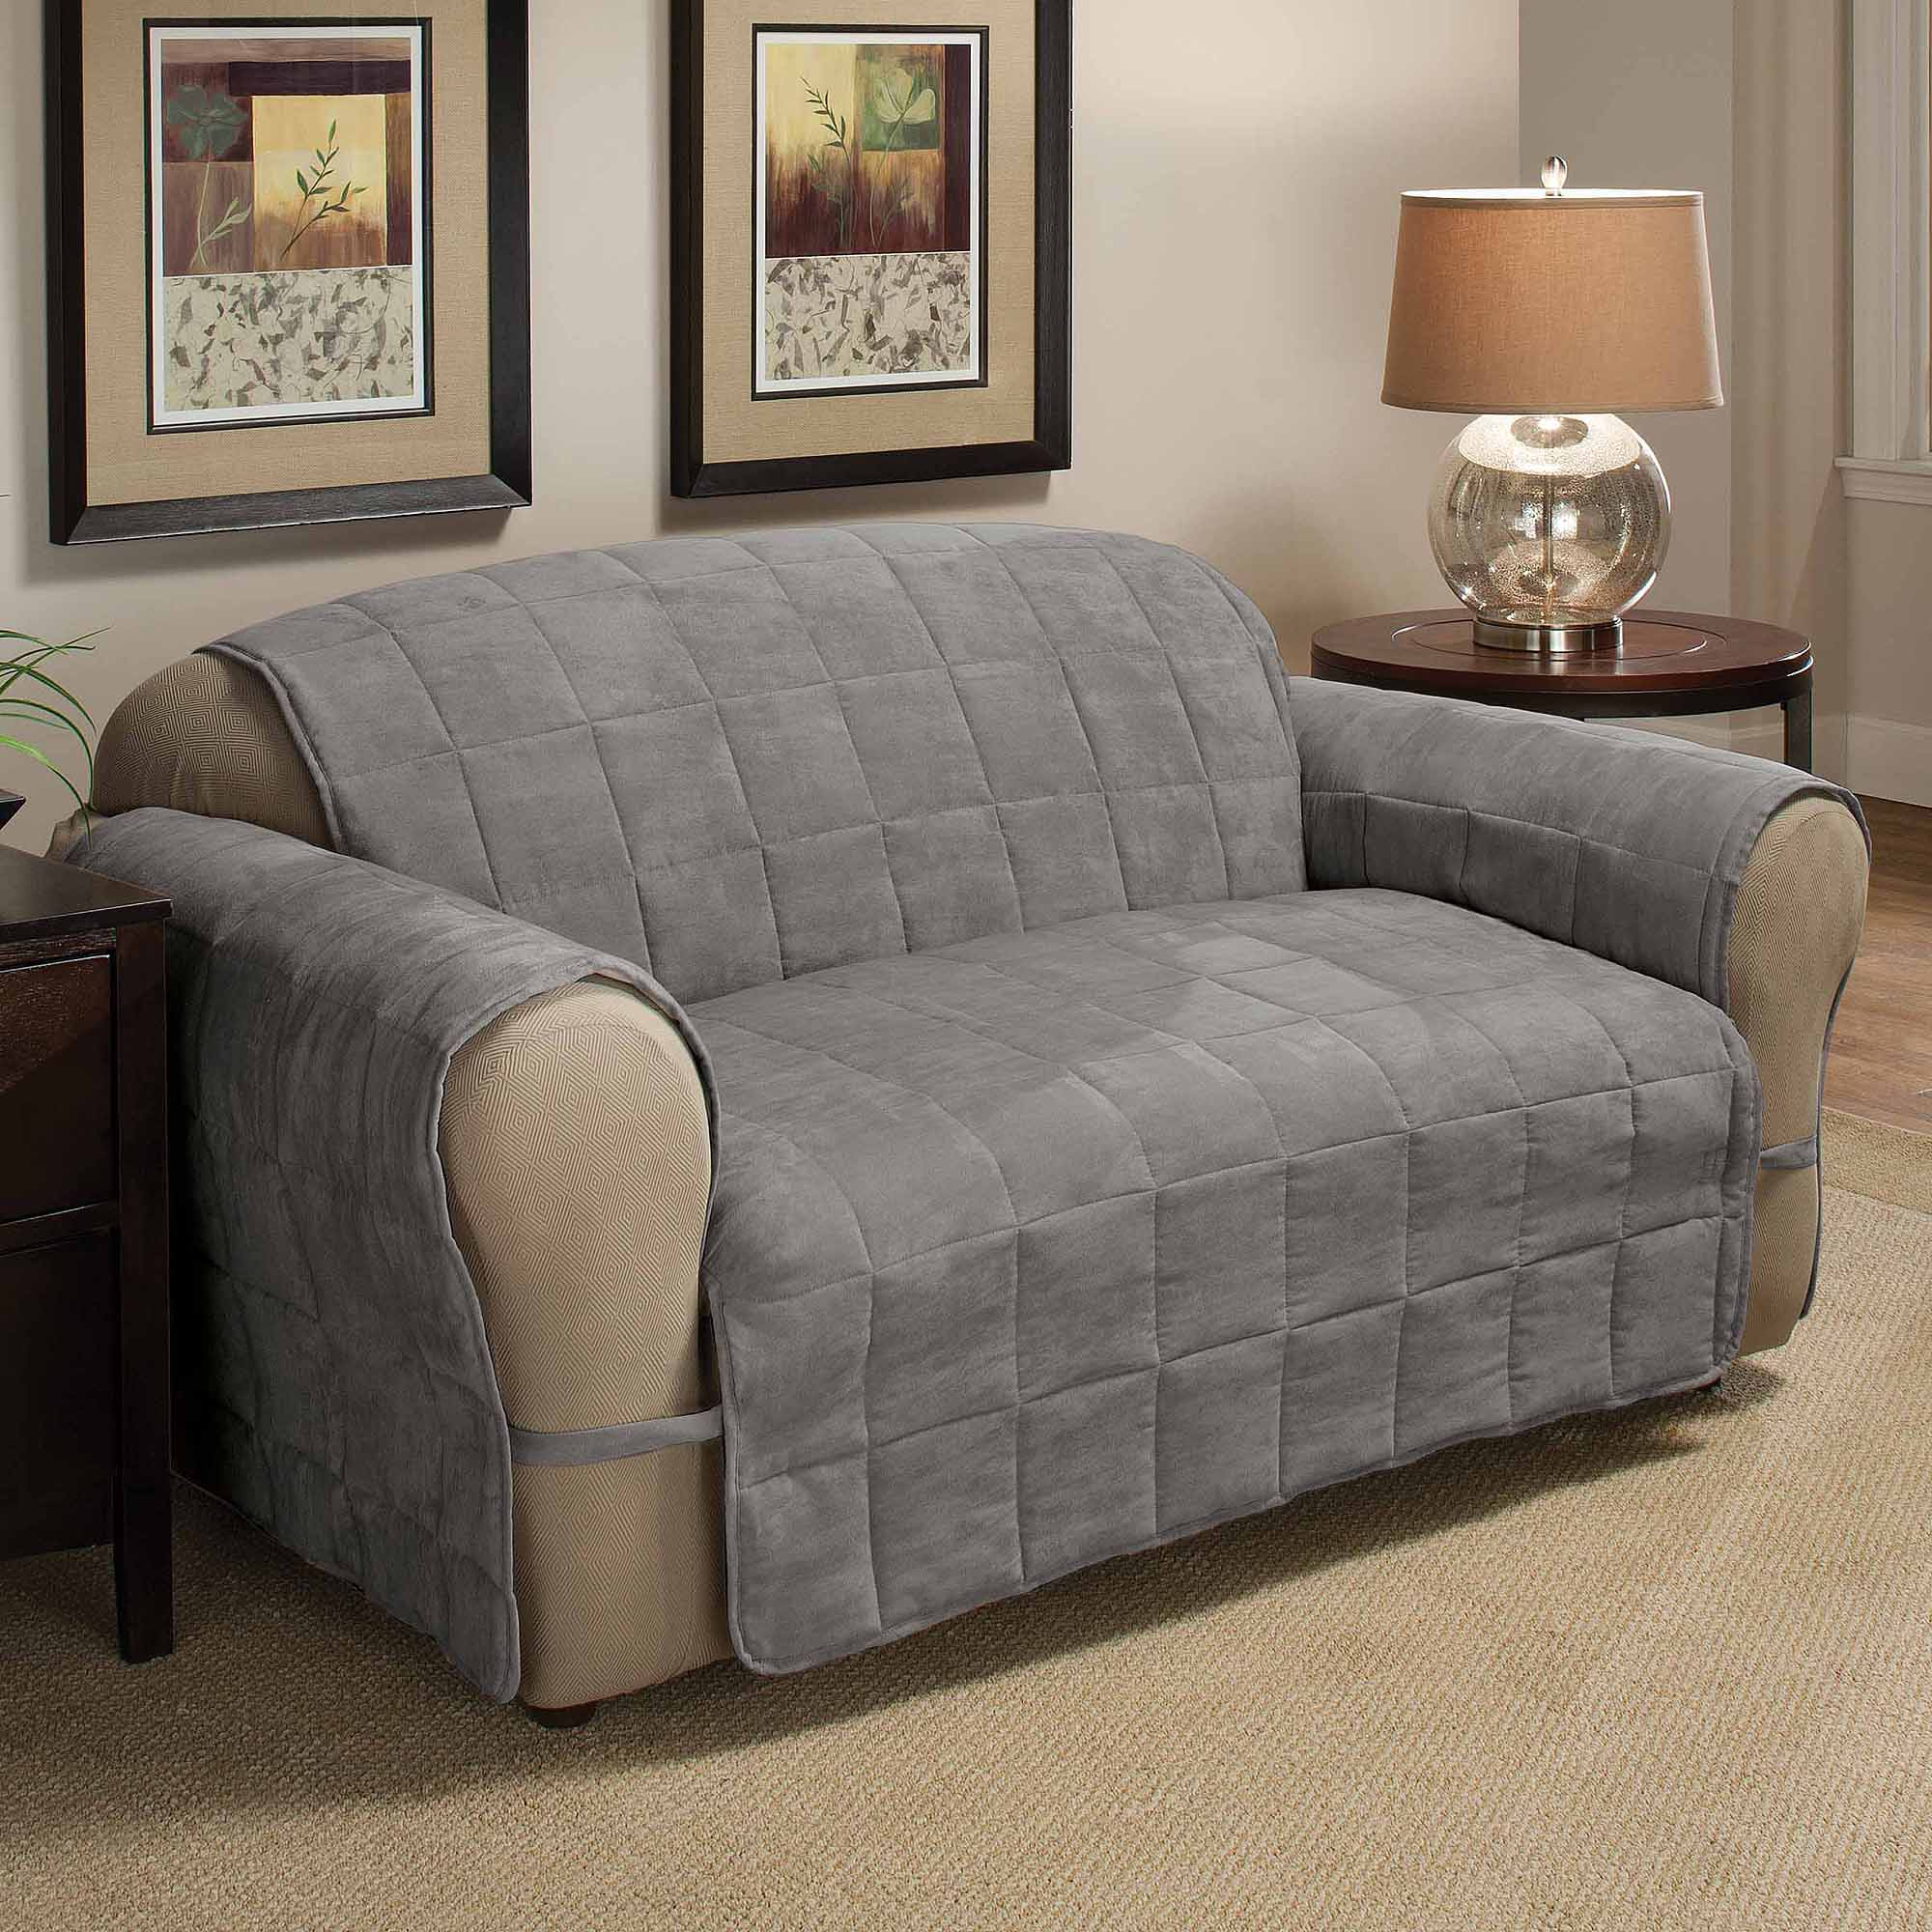 "FURNITURE PROTECTOR DOUBLE SIDE SOFA COVER 75x110"" Walmart"